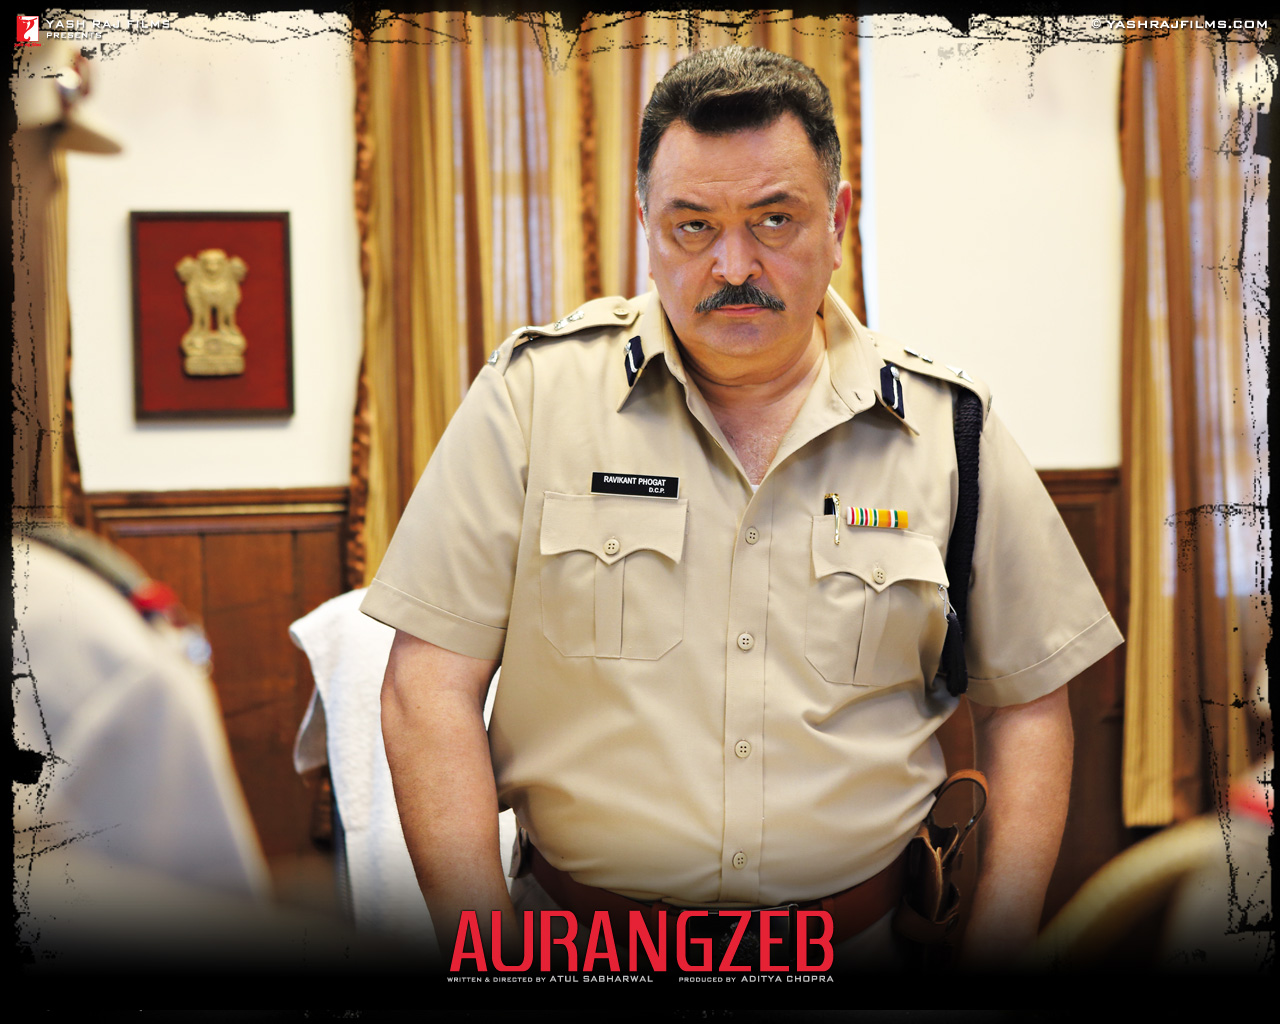 4 Preview: Aurangzeb Synopsis and Stills!